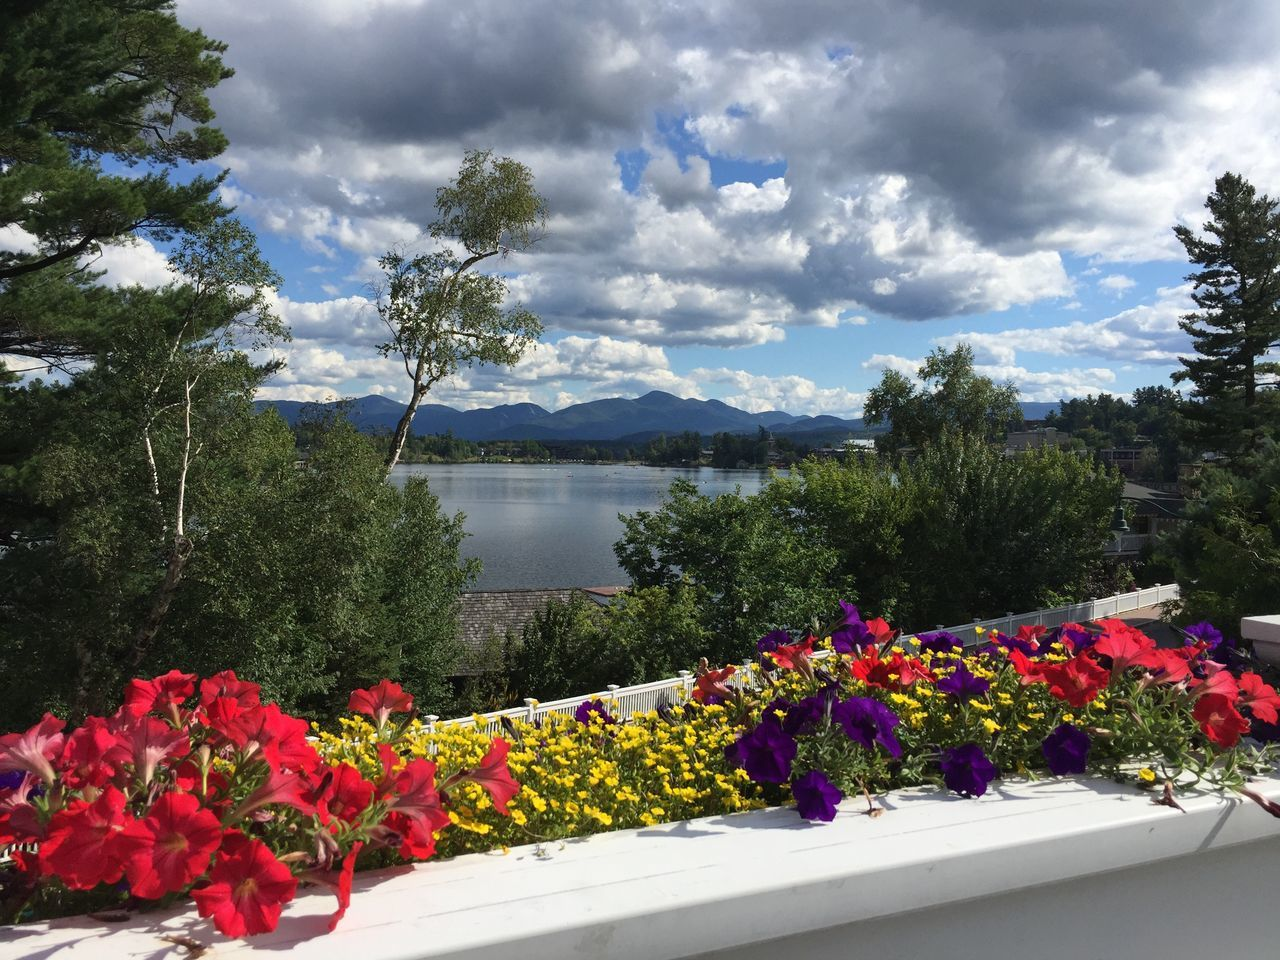 Mountains Adirondack Mountains Mirror Lake Lake Placid Water View Flower Beauty In Nature Nature Growth Sky Tree Scenics Mountain Plant Tranquility Outdoors No People Day Tranquil Scene Cloud - Sky Freshness Fragility Water Bougainvillea